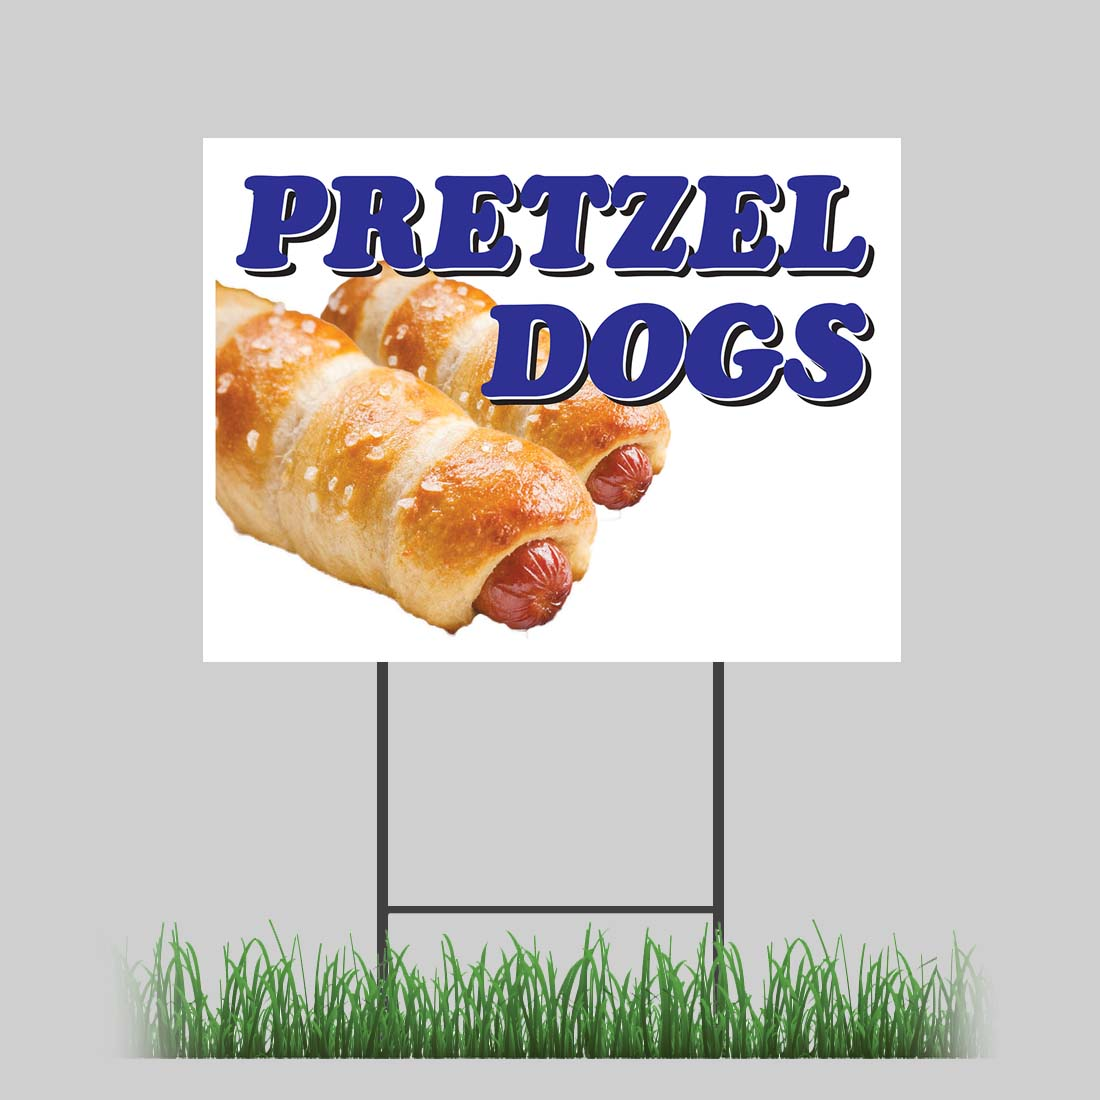 18x24 Chili Dogs Yard Sign Hot Dog Traditional Onion Concession Stand Sign